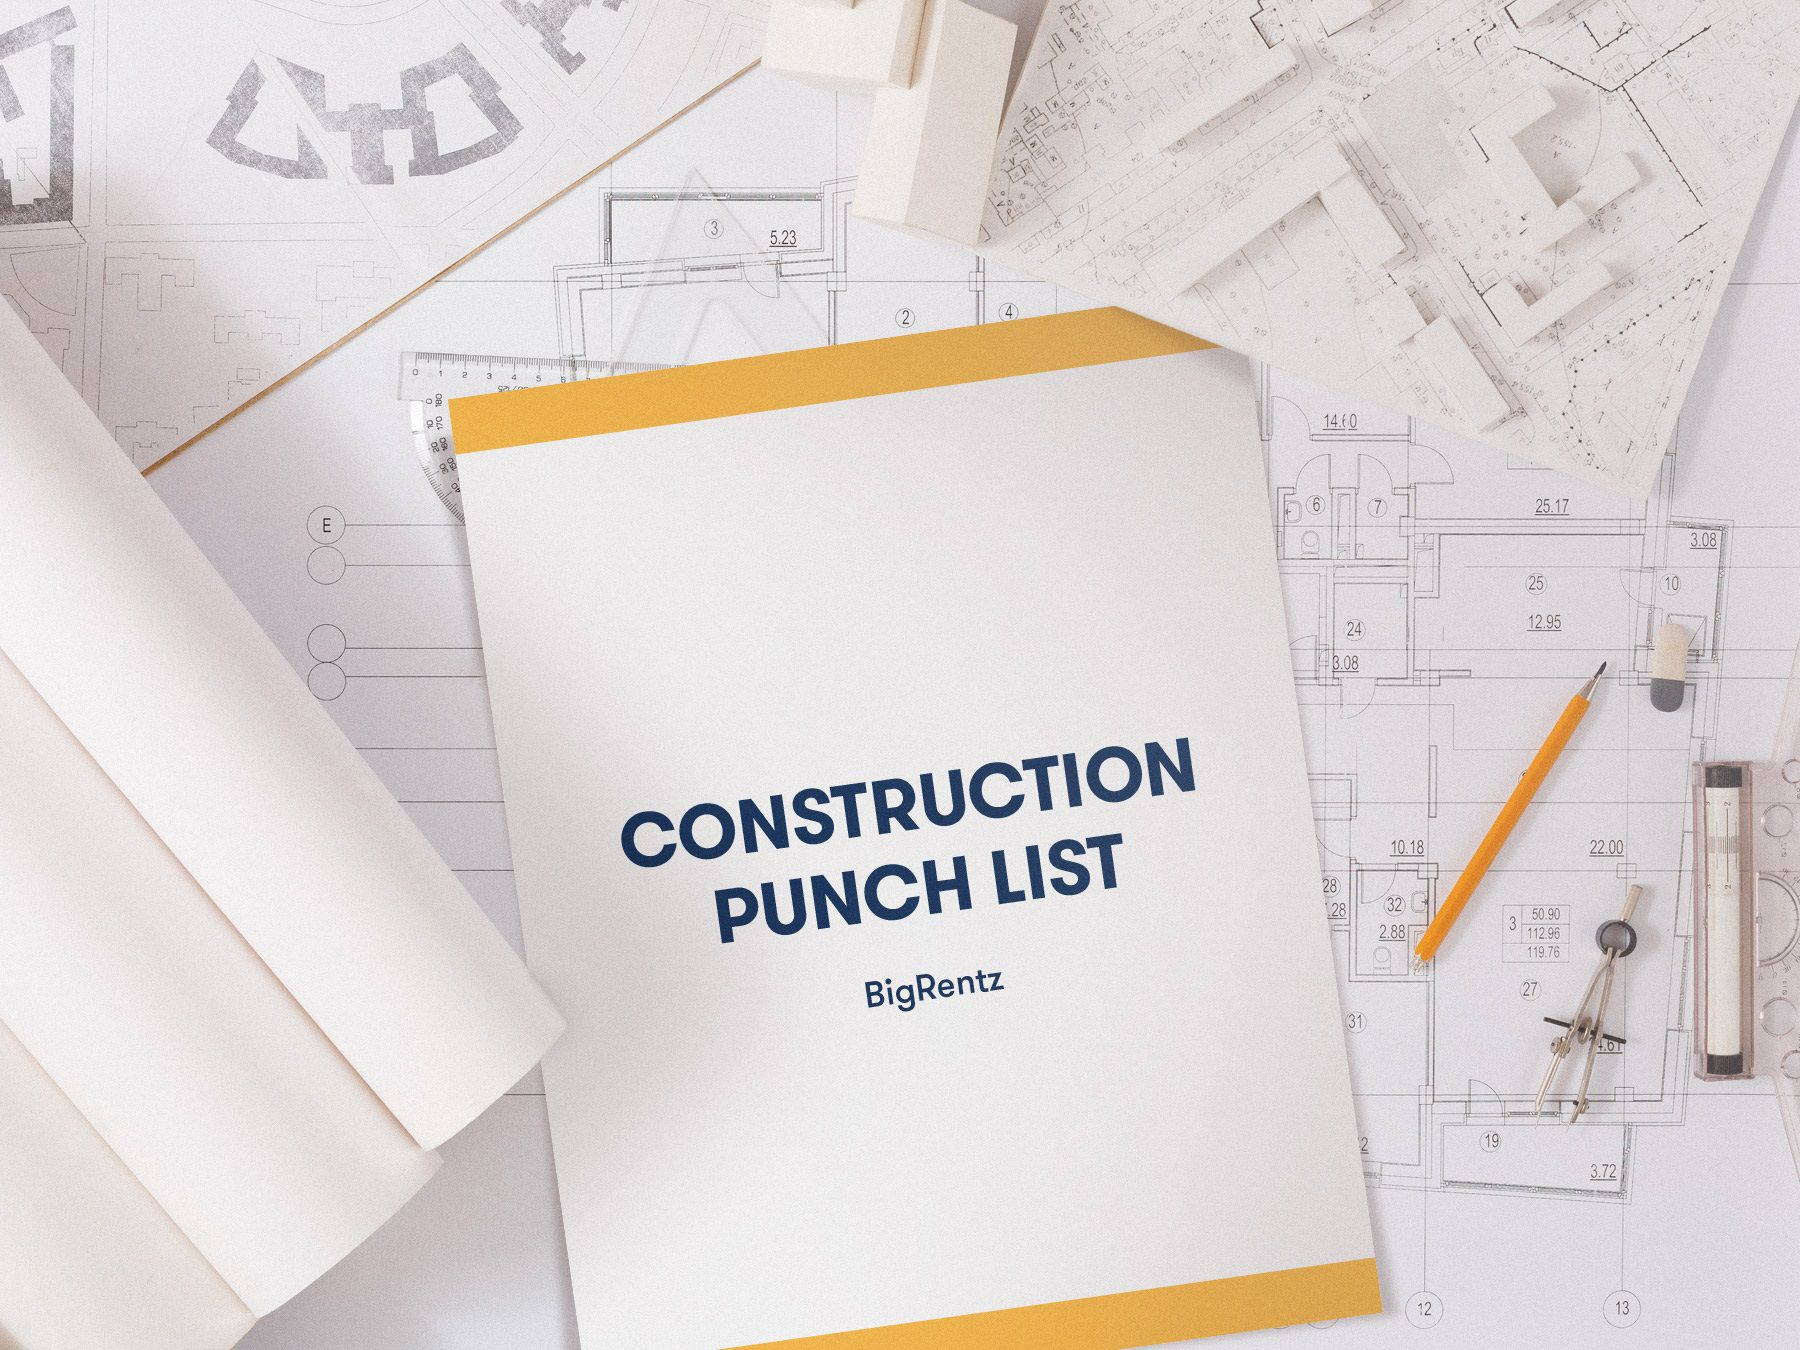 009 Marvelou Free Commercial Construction Punch List Template Photo Full